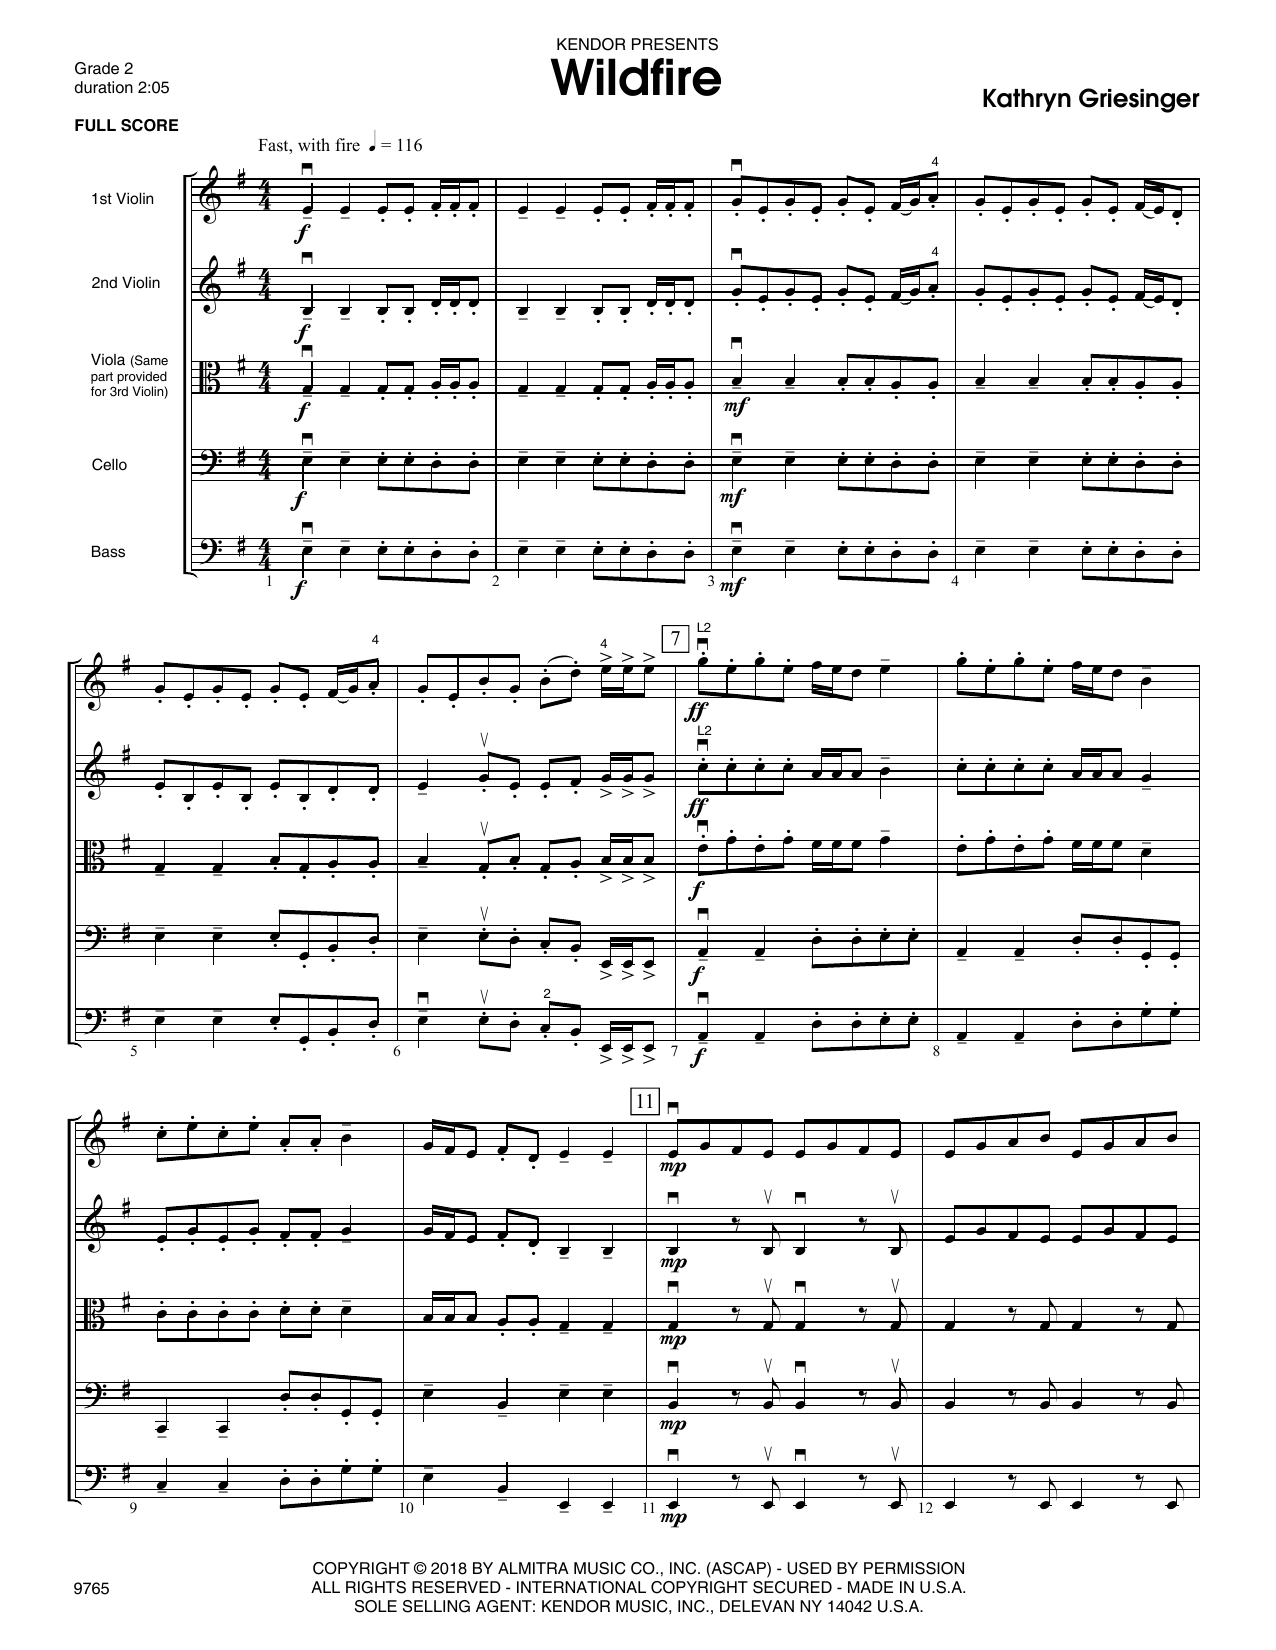 Kathryn Griesinger Wildfire - Full Score sheet music notes and chords. Download Printable PDF.